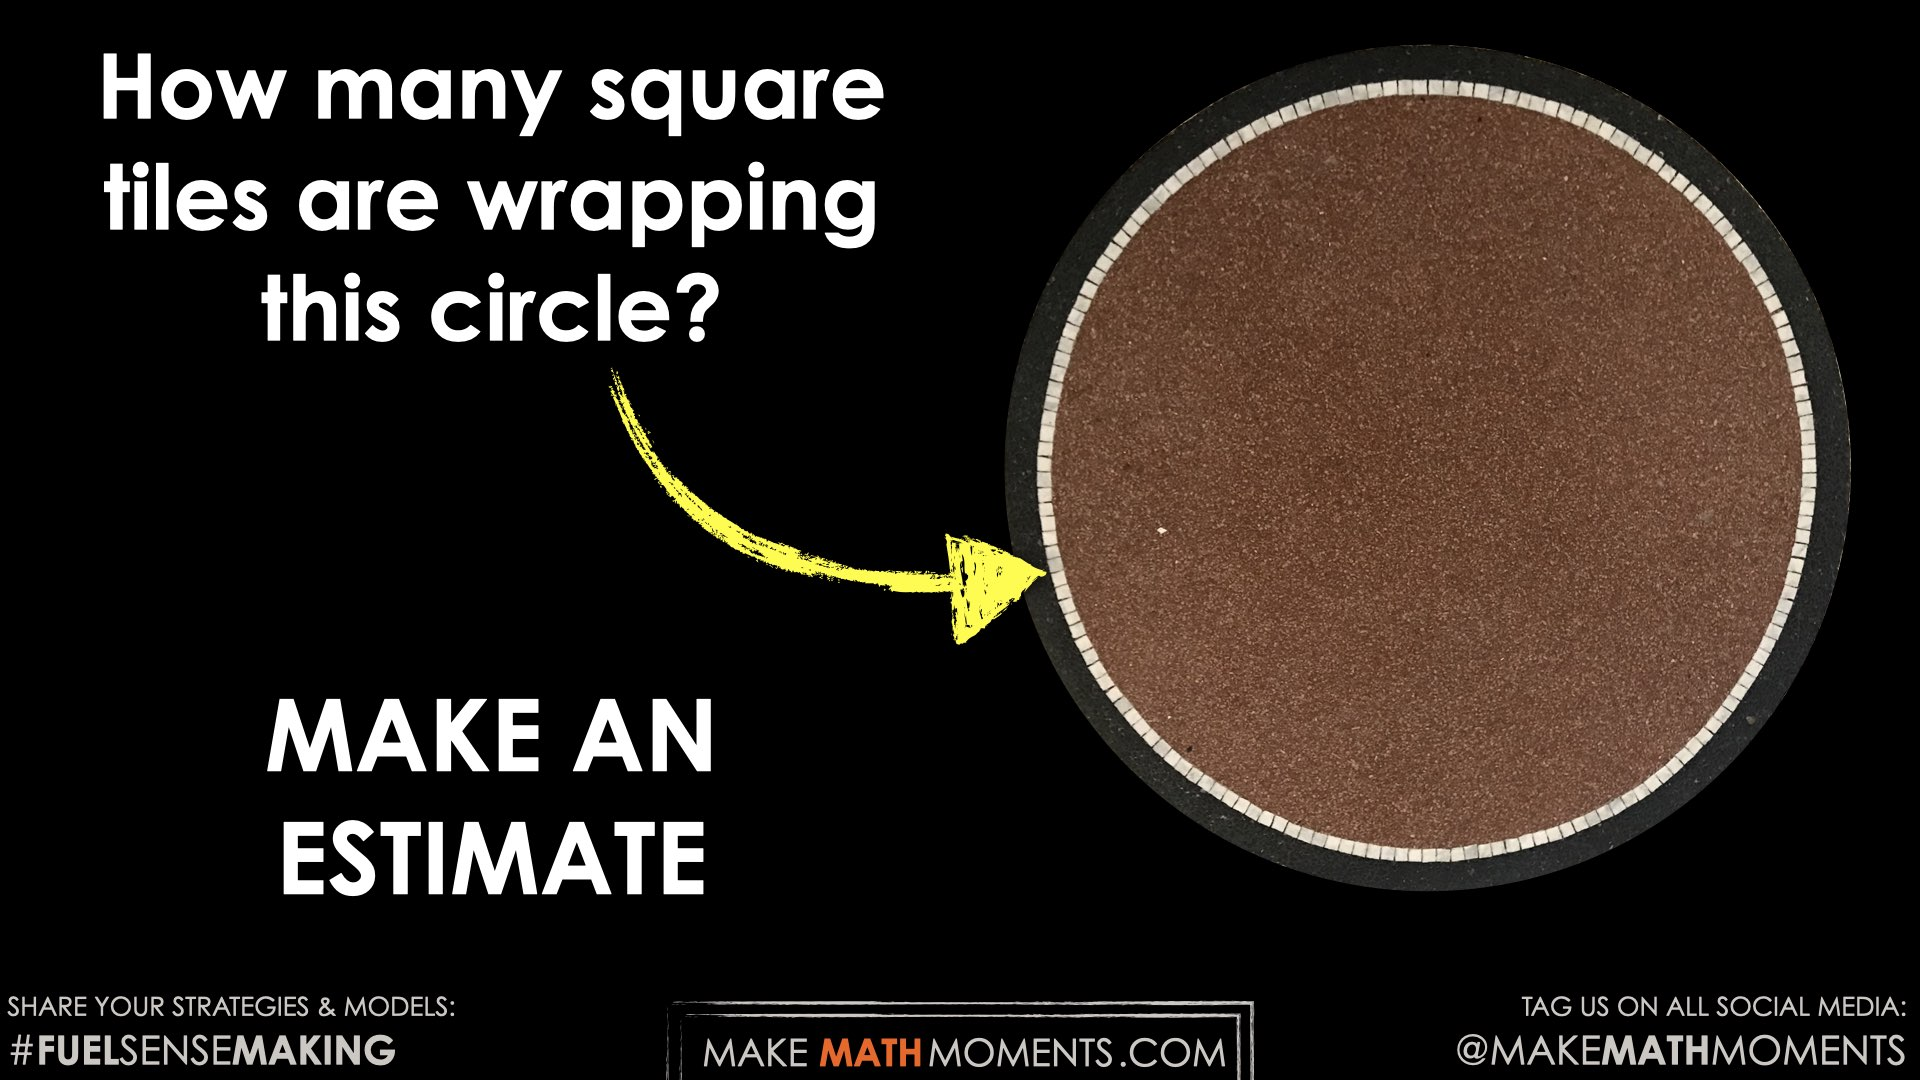 Going-In-Circles-Day-2-Tile-Circle-Circumference-04-Spark-Estimation-Prompt-Image-2.001.jpeg